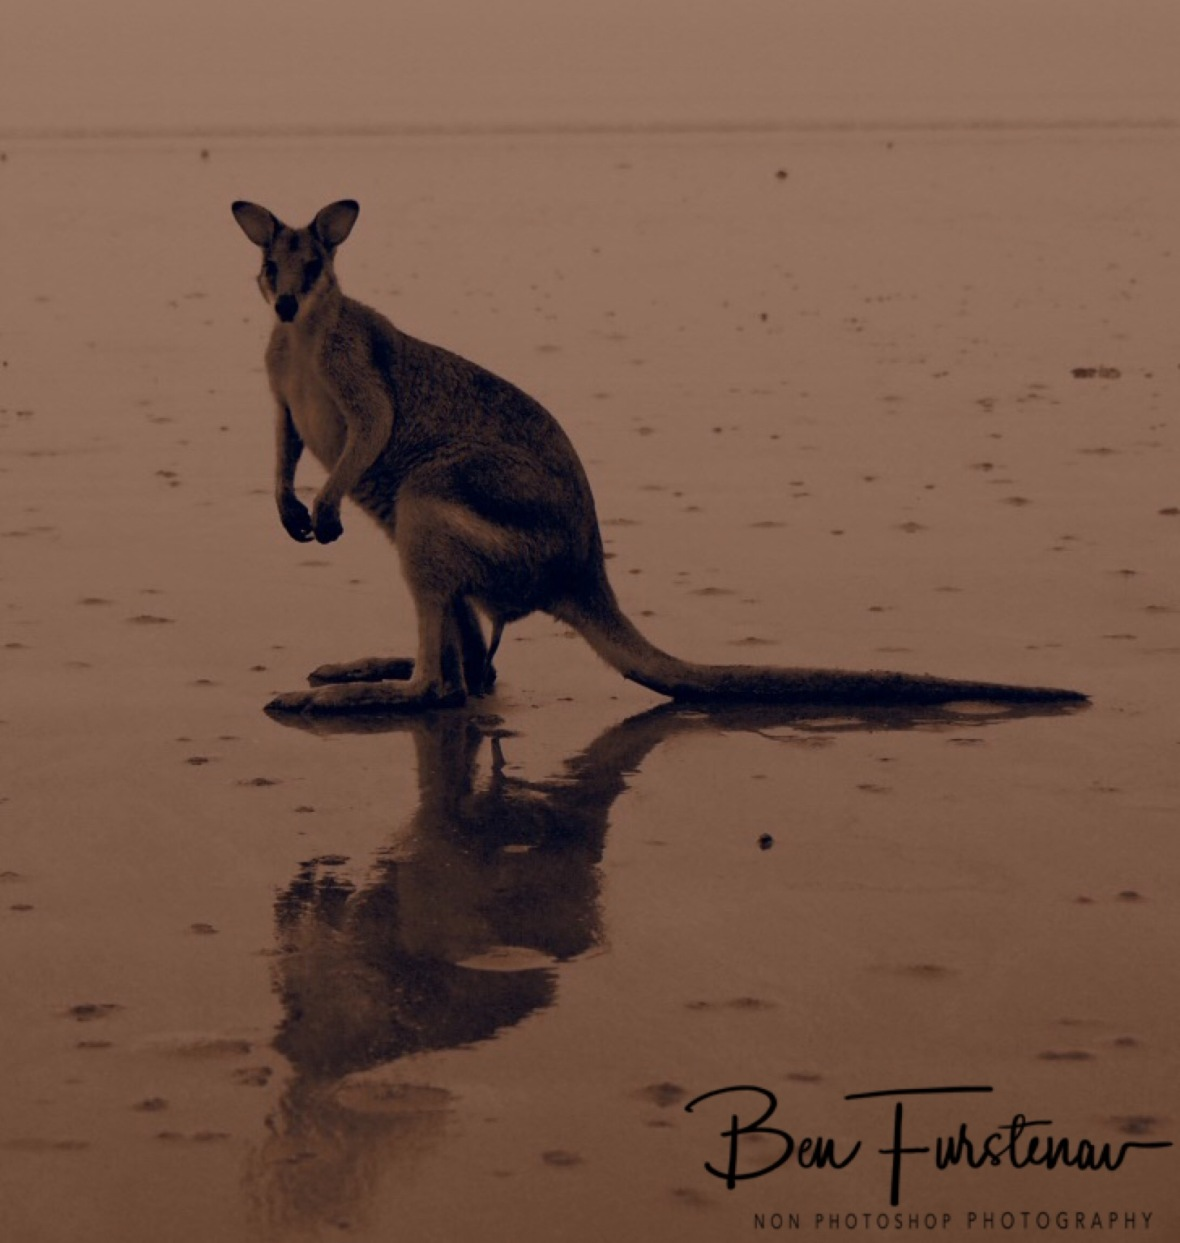 Wet beach reflections in sepia at Cape Hillsborough, Queensland, Australia